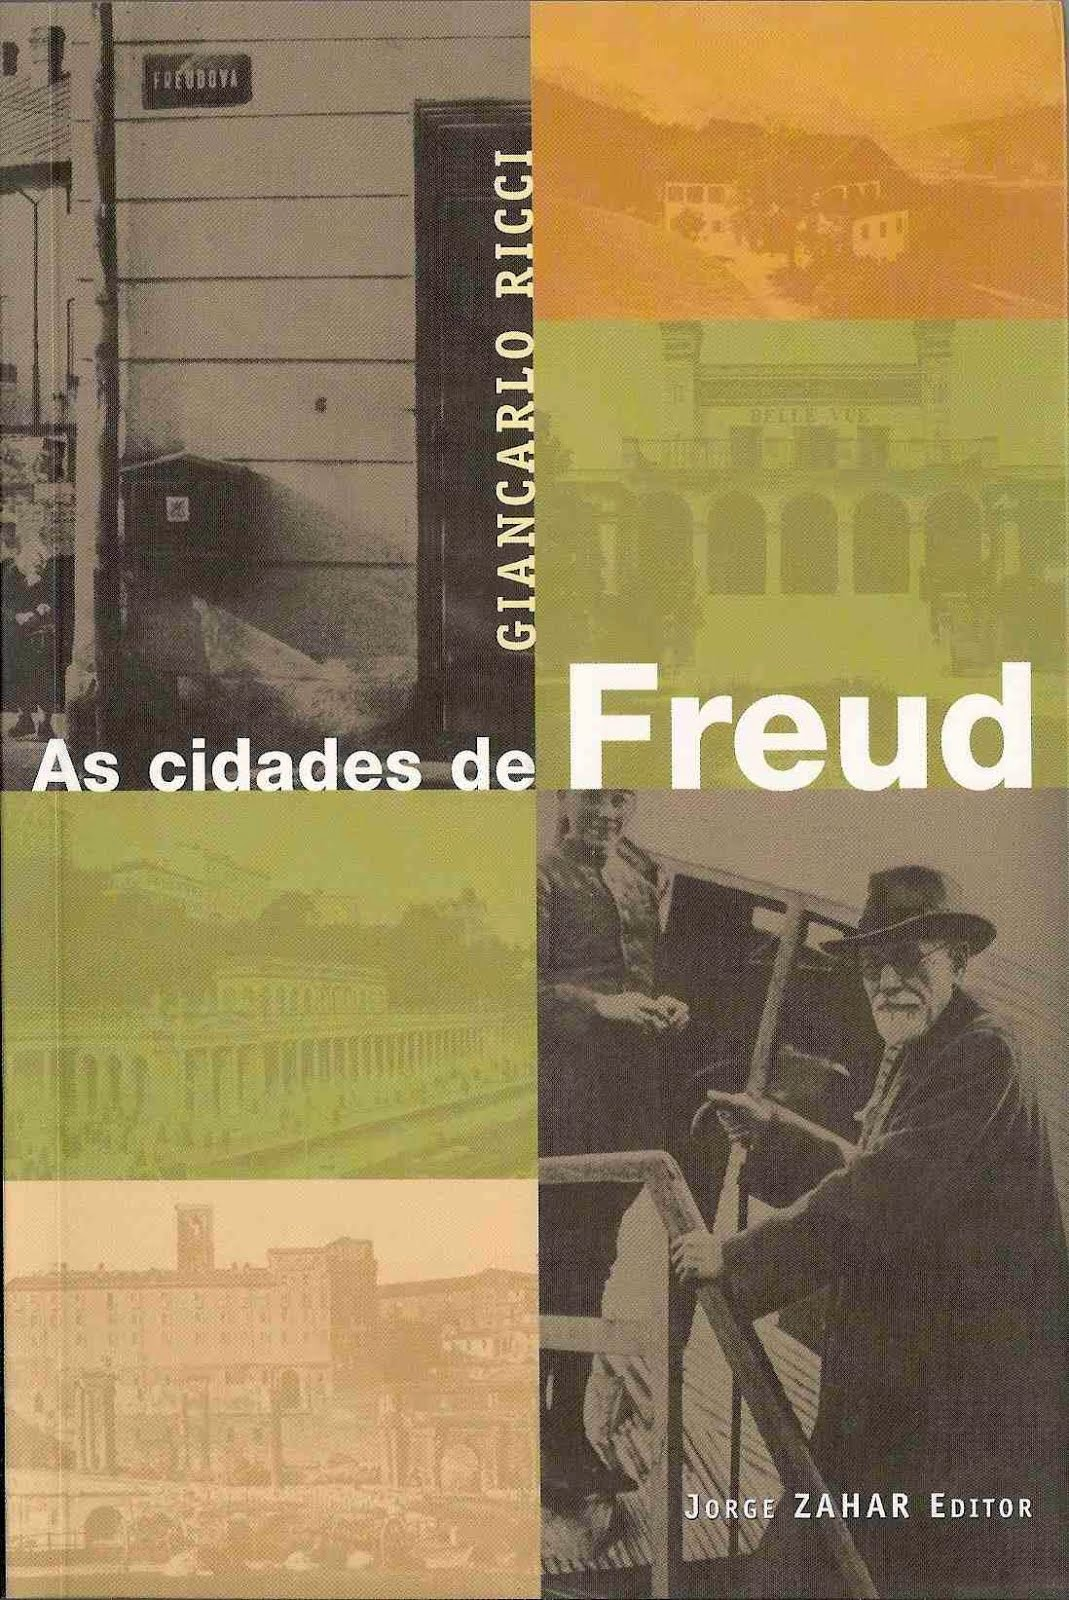 AS CIDADES DE FREUD di G.RICCI